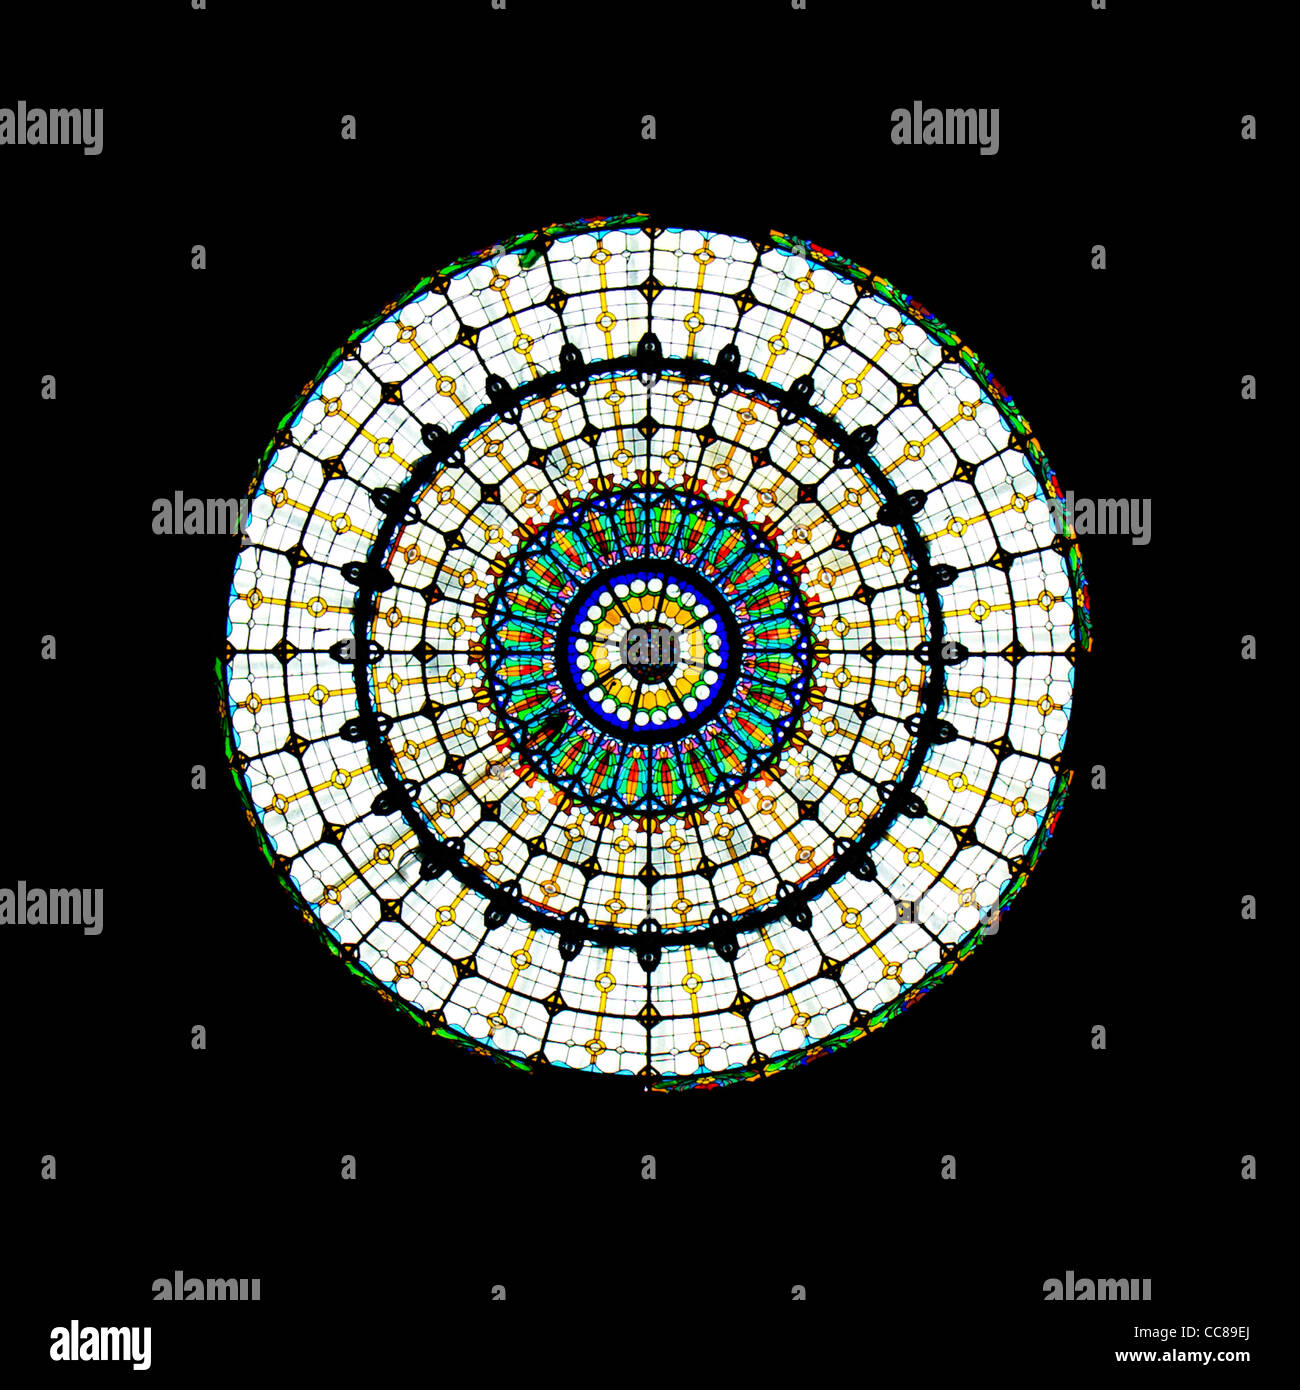 A colourful round stained glass window. - Stock Image